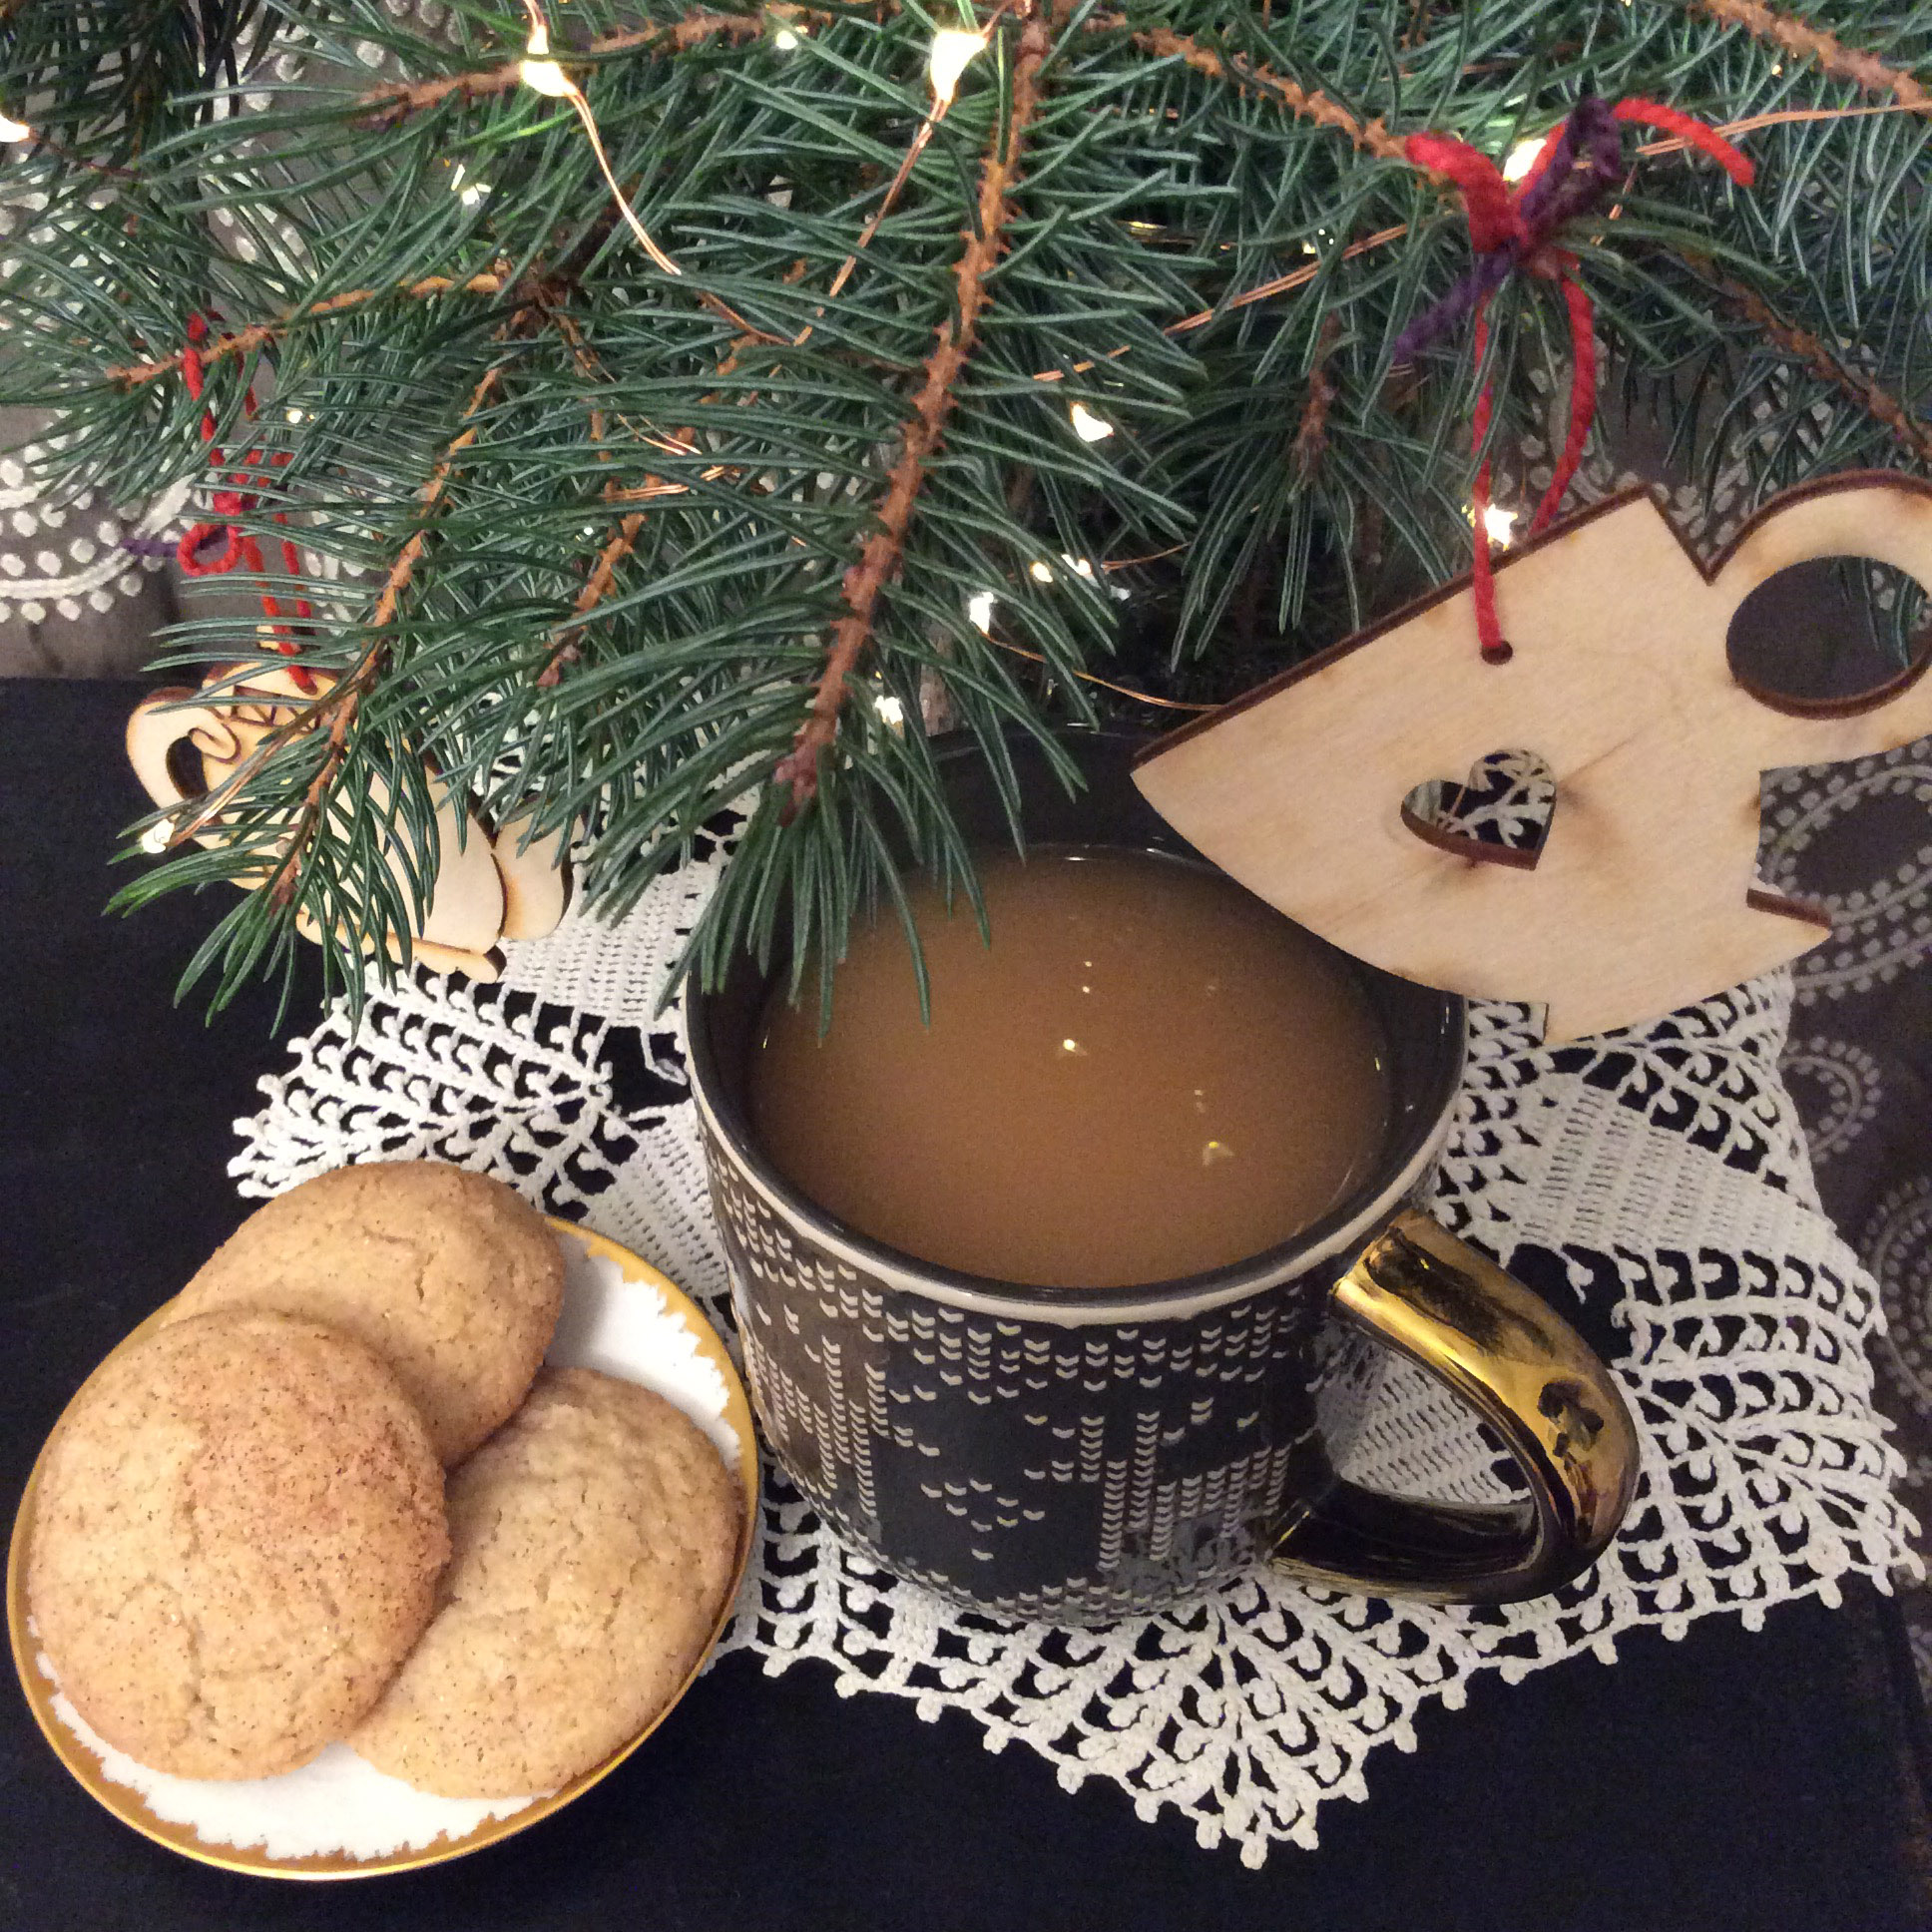 A sweater print mug of tea and a plate of snickerdoodles are arranged on a white lace doily under a pine tree decorated with twinkle lights and teacup ornaments.